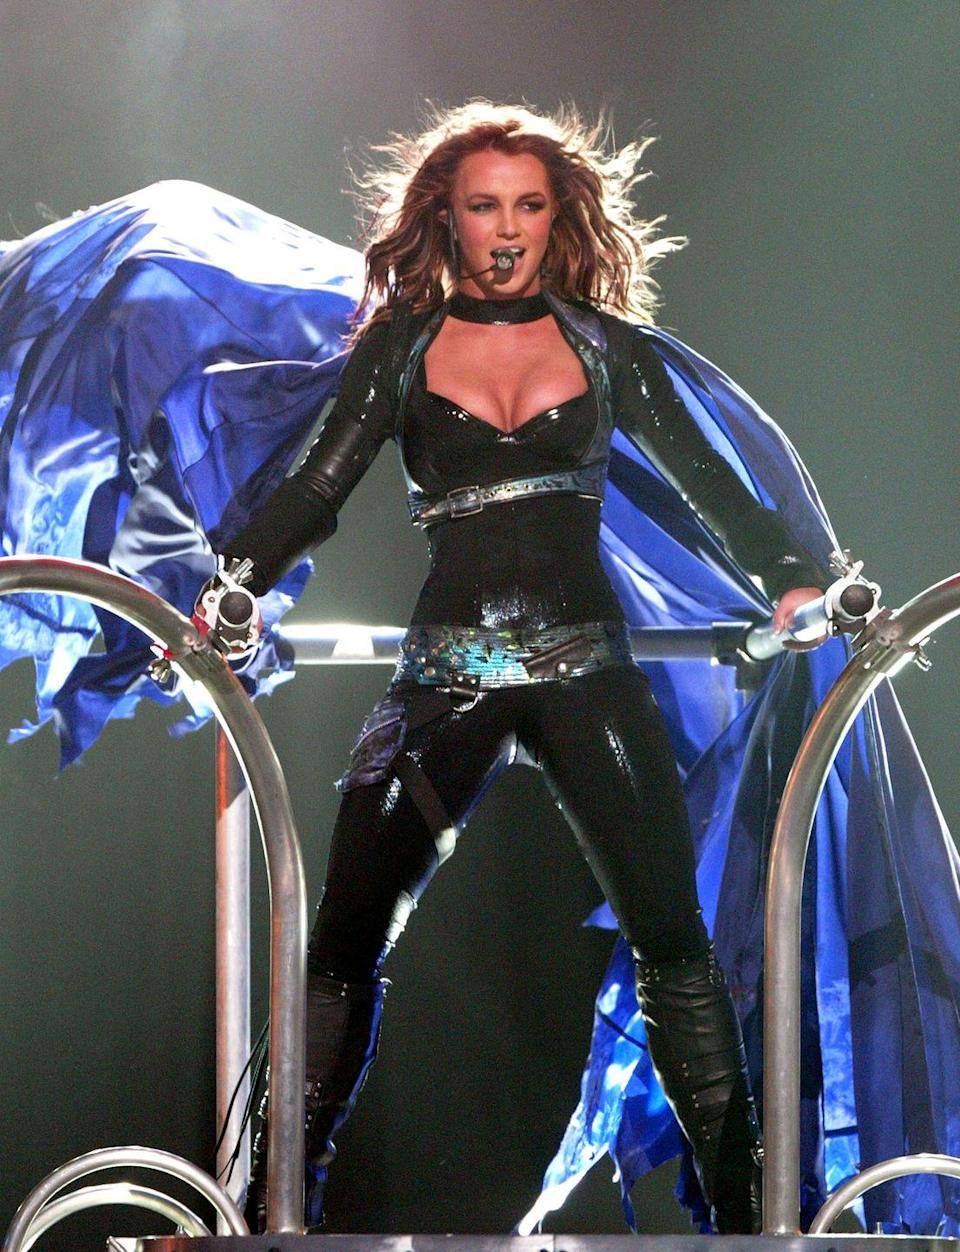 <p>Britney Spears performs during her Onyx Hotel tour on March 28, 2004 in Miami, Florida. </p>